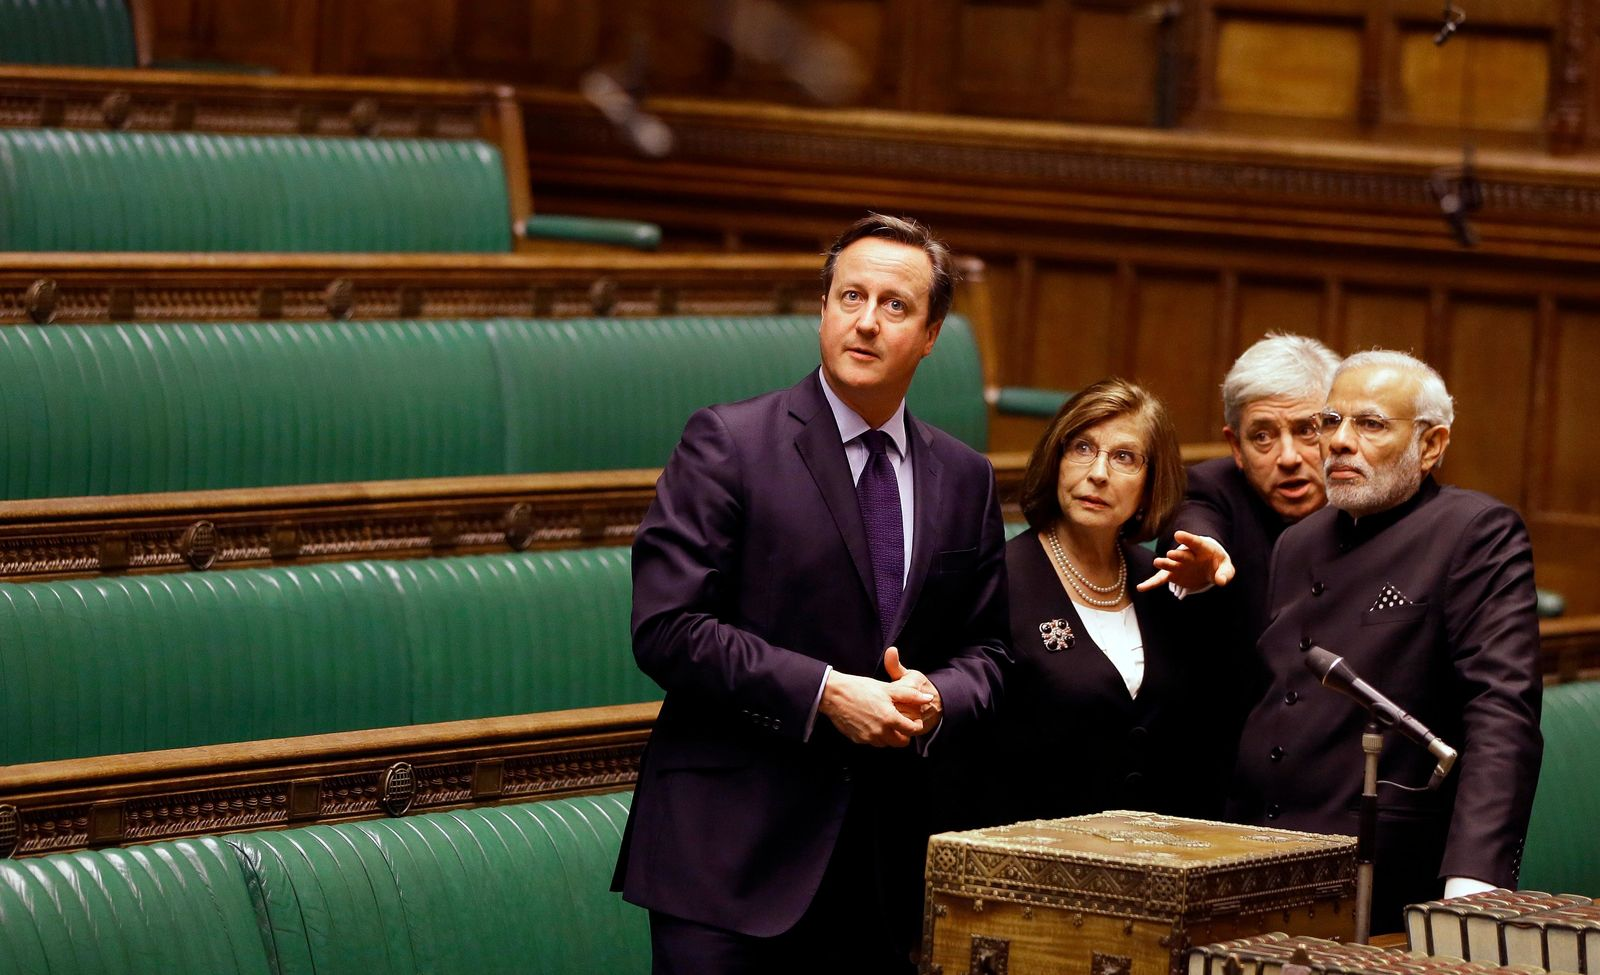 FILE - In this Thursday, Nov. 12, 2015 file photo, Britain's Prime Minister David Cameron, left, with India's Prime Minister Narendra Modi, right, John Bercow, the Speaker of the House of Commons, second right, and Baroness D'Souza, second left, in the chamber as they tour Parliament in London. A colorful era in British parliamentary history is coming to a close with Speaker of the House John Bercow's abrupt announcement Monday, Sept. 9, 2019 that he will leave his influential post by the end of October.  (AP Photo/Kirsty Wigglesworth, pool)